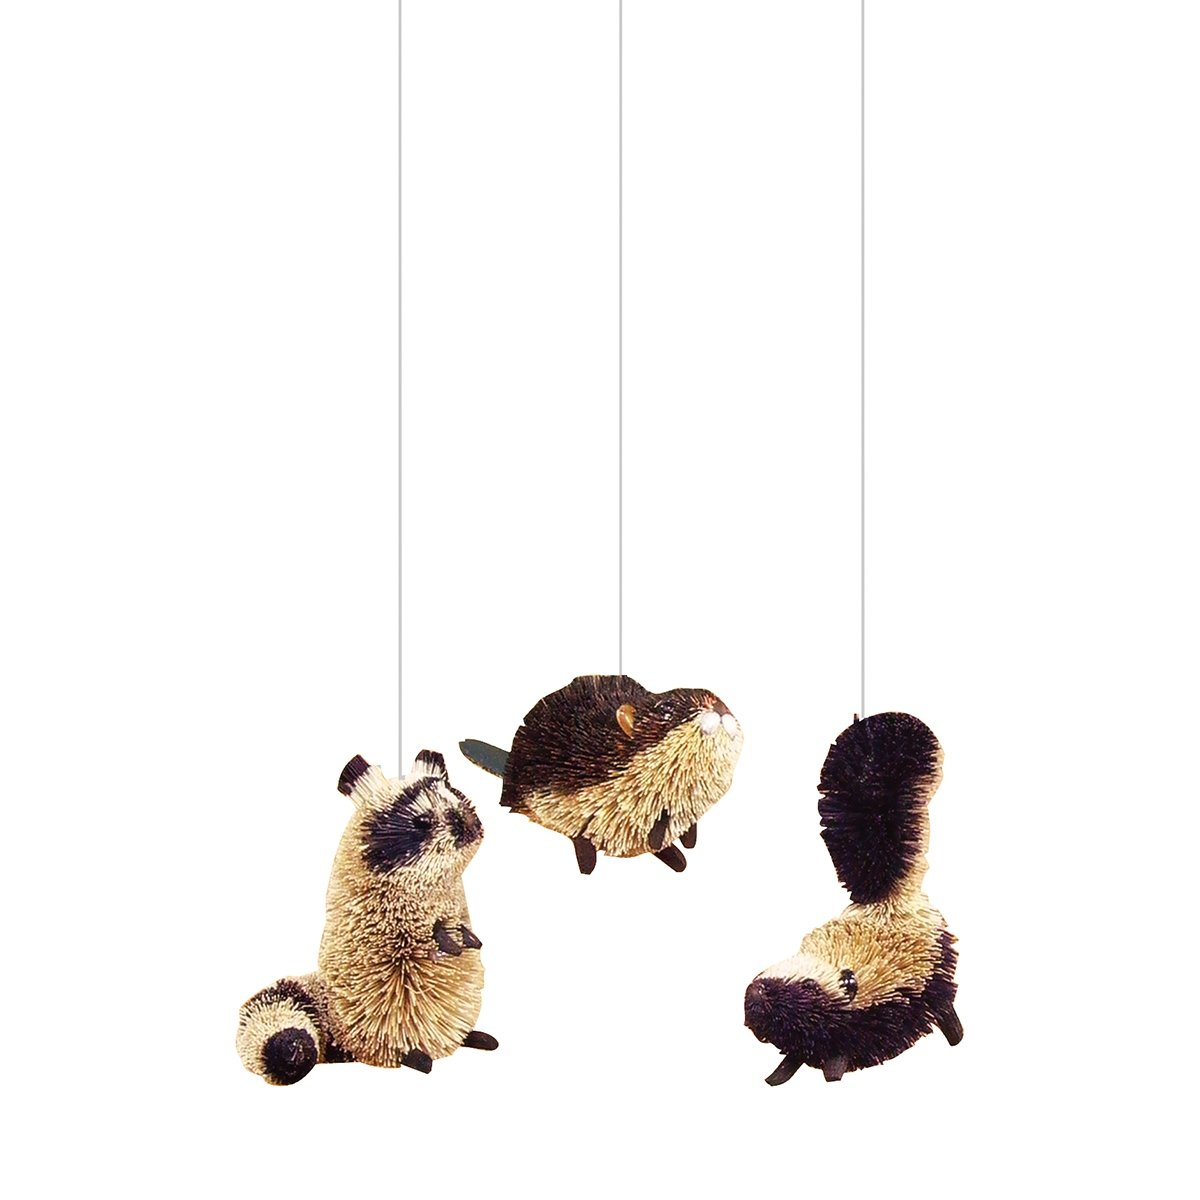 Beaver Raccoon & Skunk Ornaments